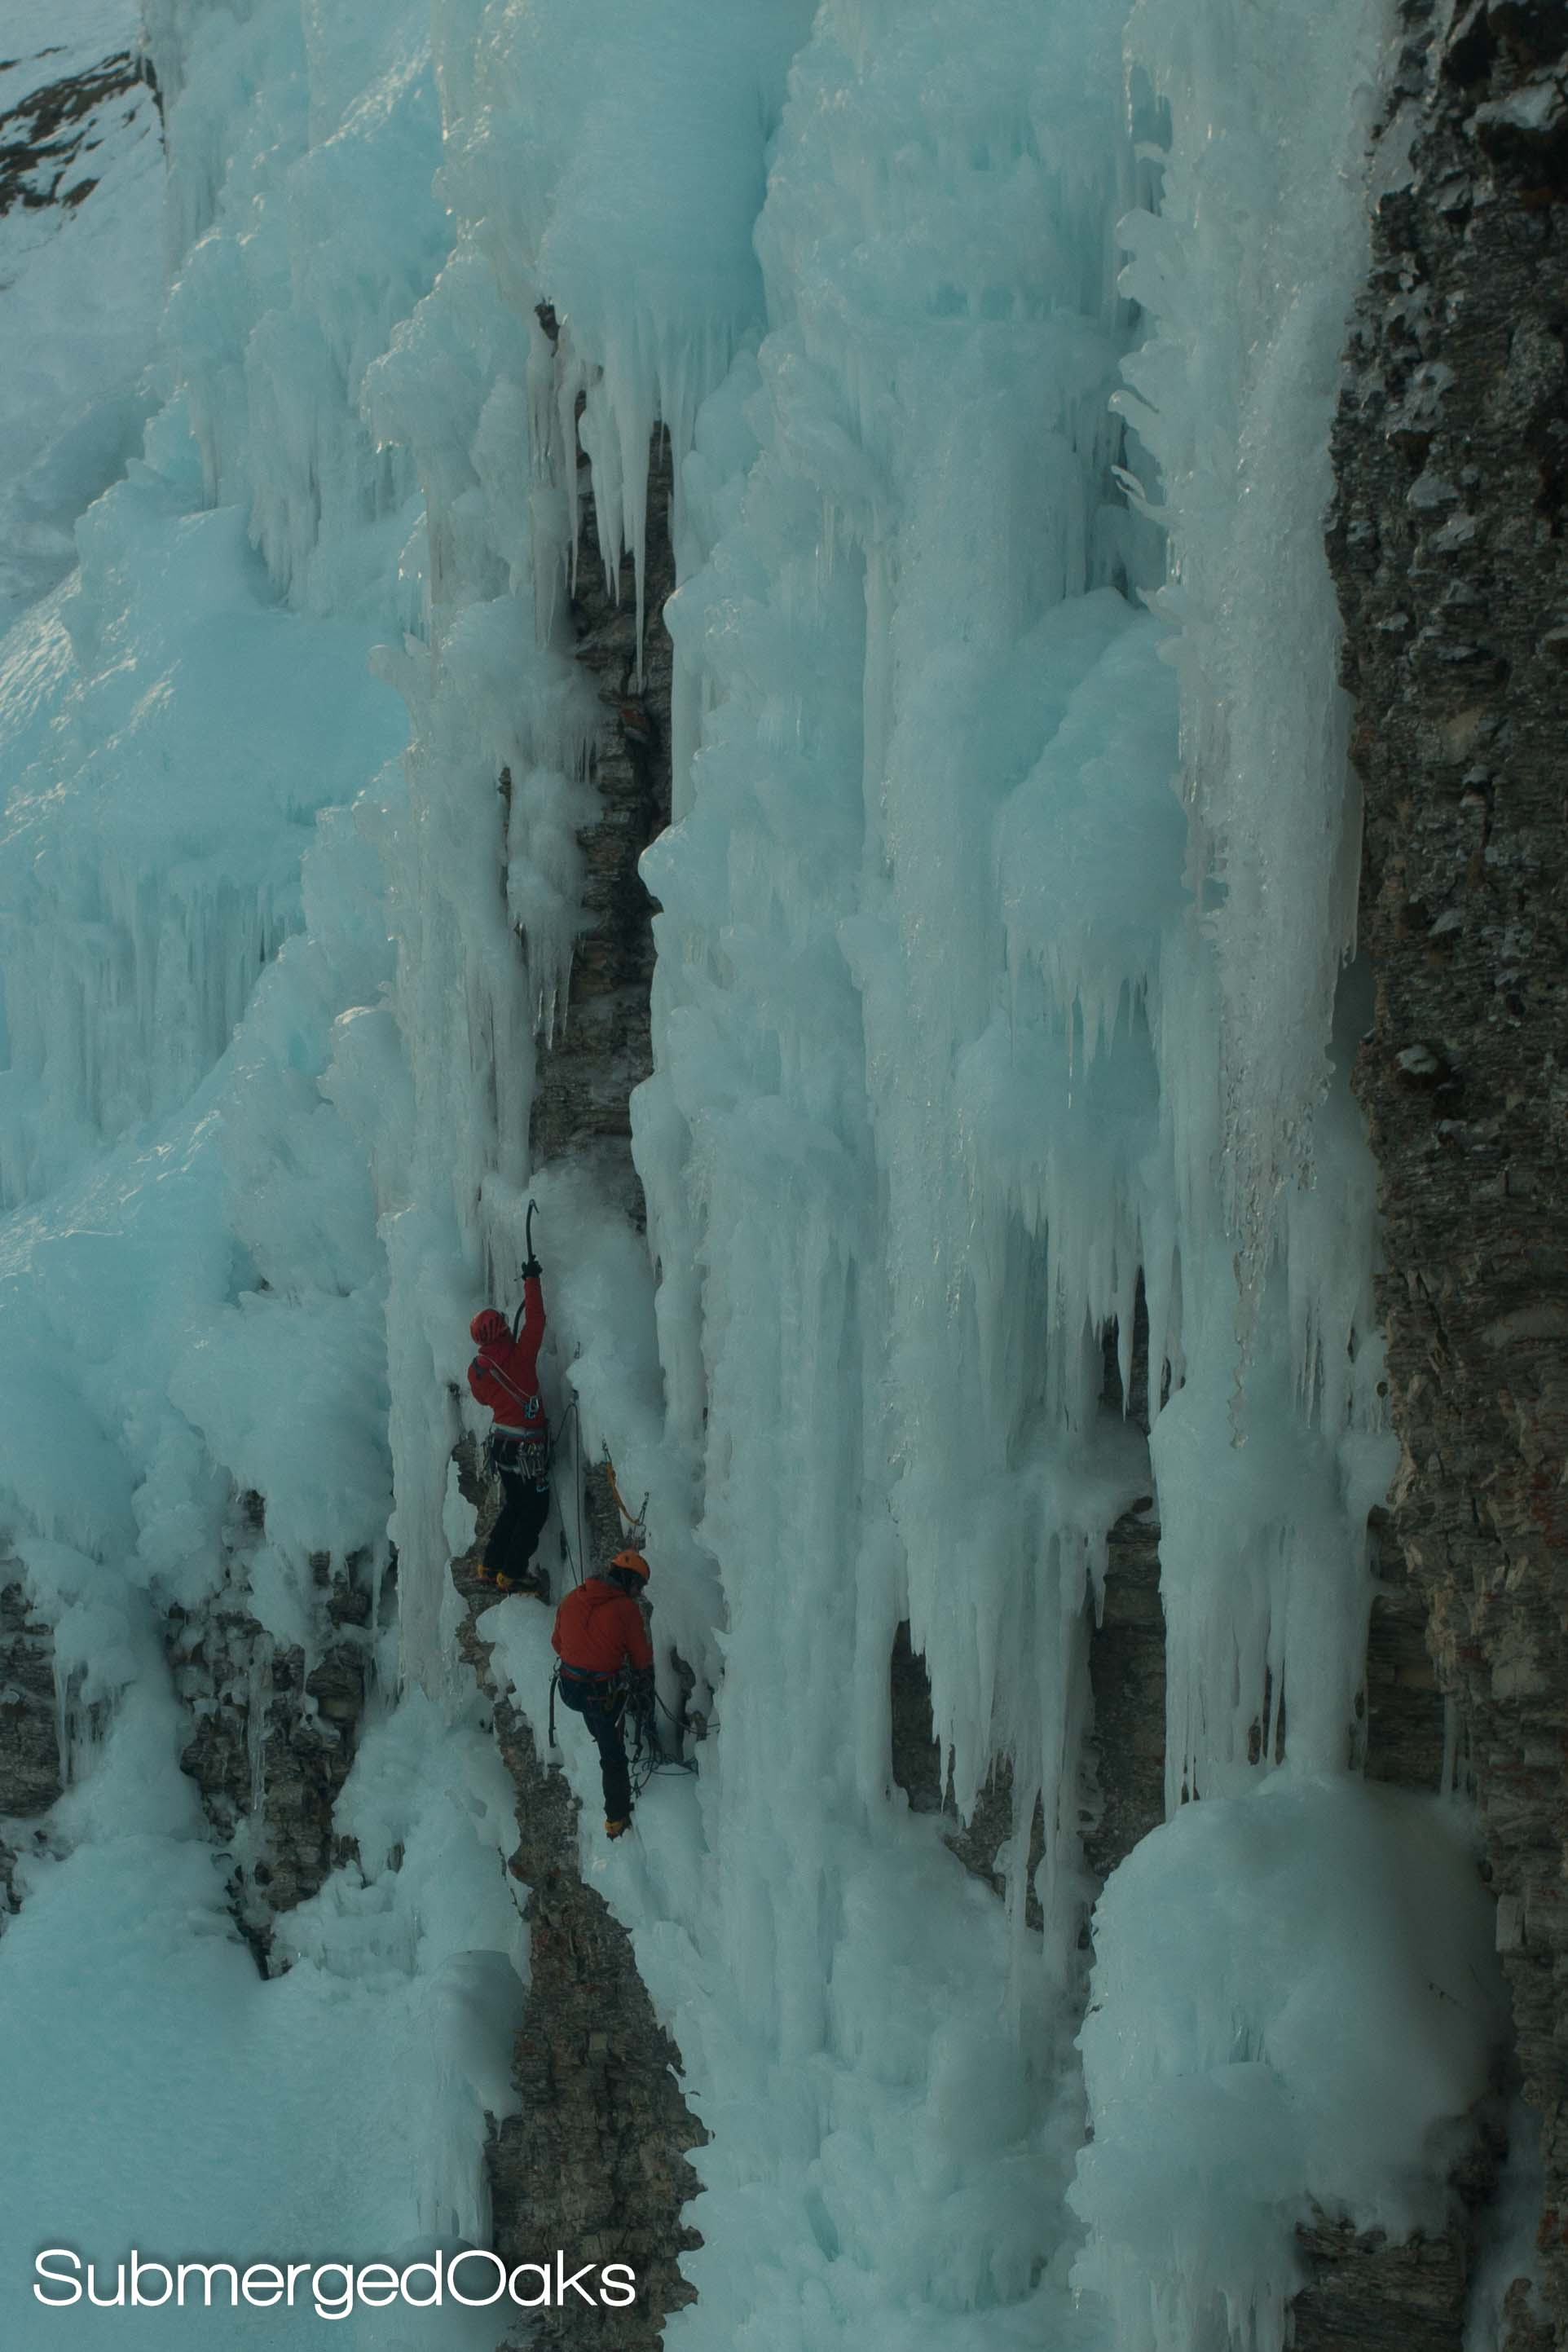 Ice climbers - they are braver then either of us! Right behind them is a sheer cliff